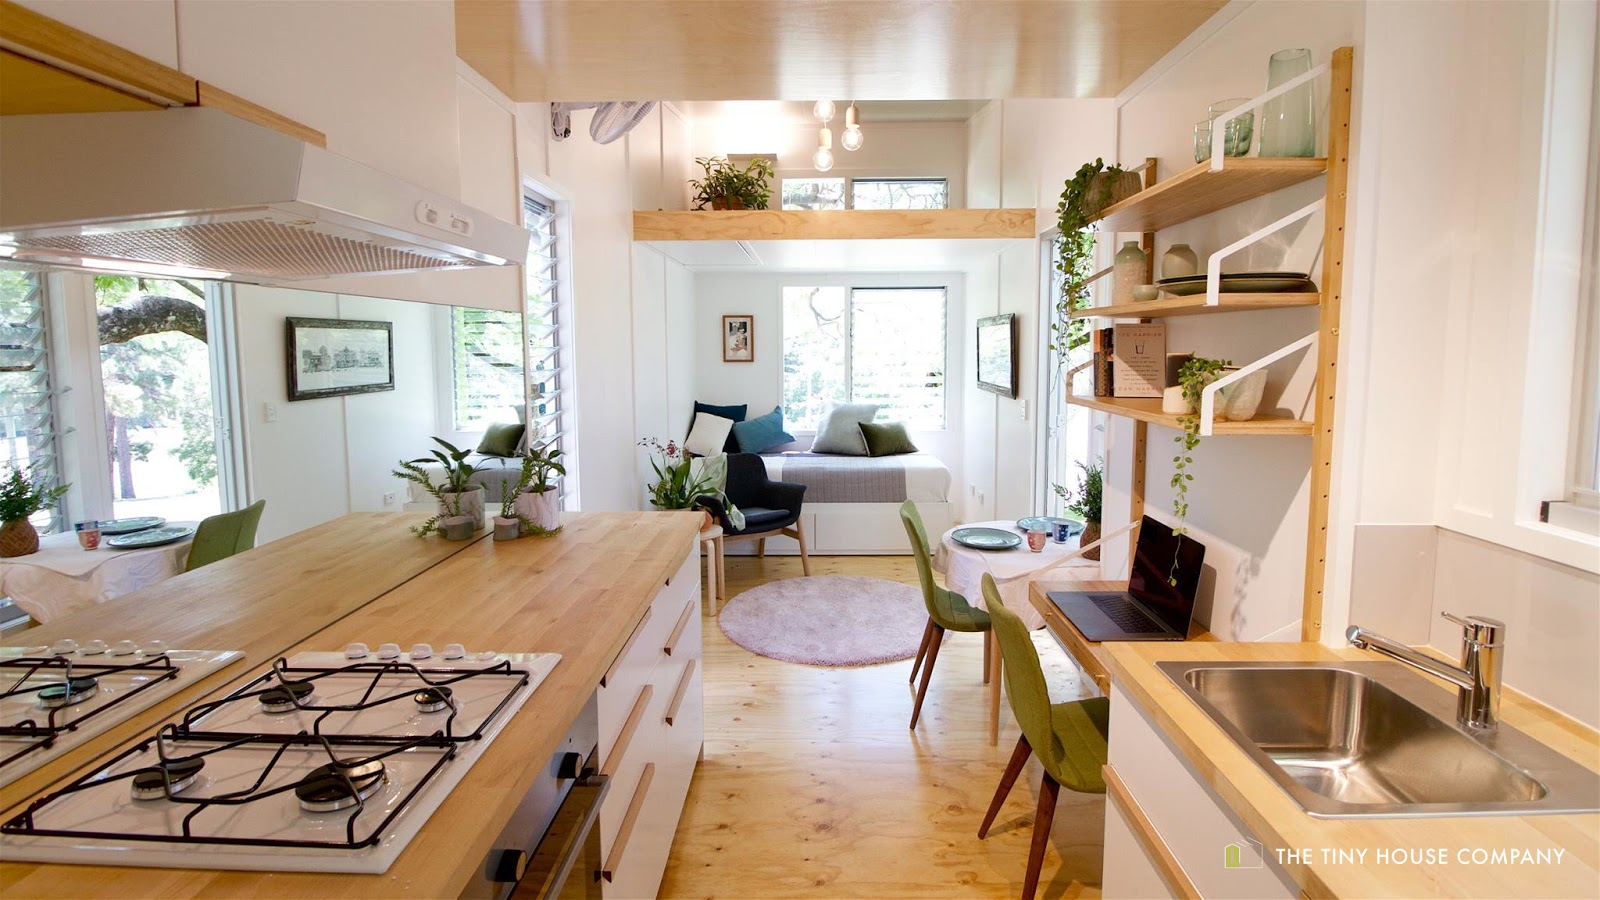 TINY HOUSE TOWN: The Pod C From The Tiny House Company